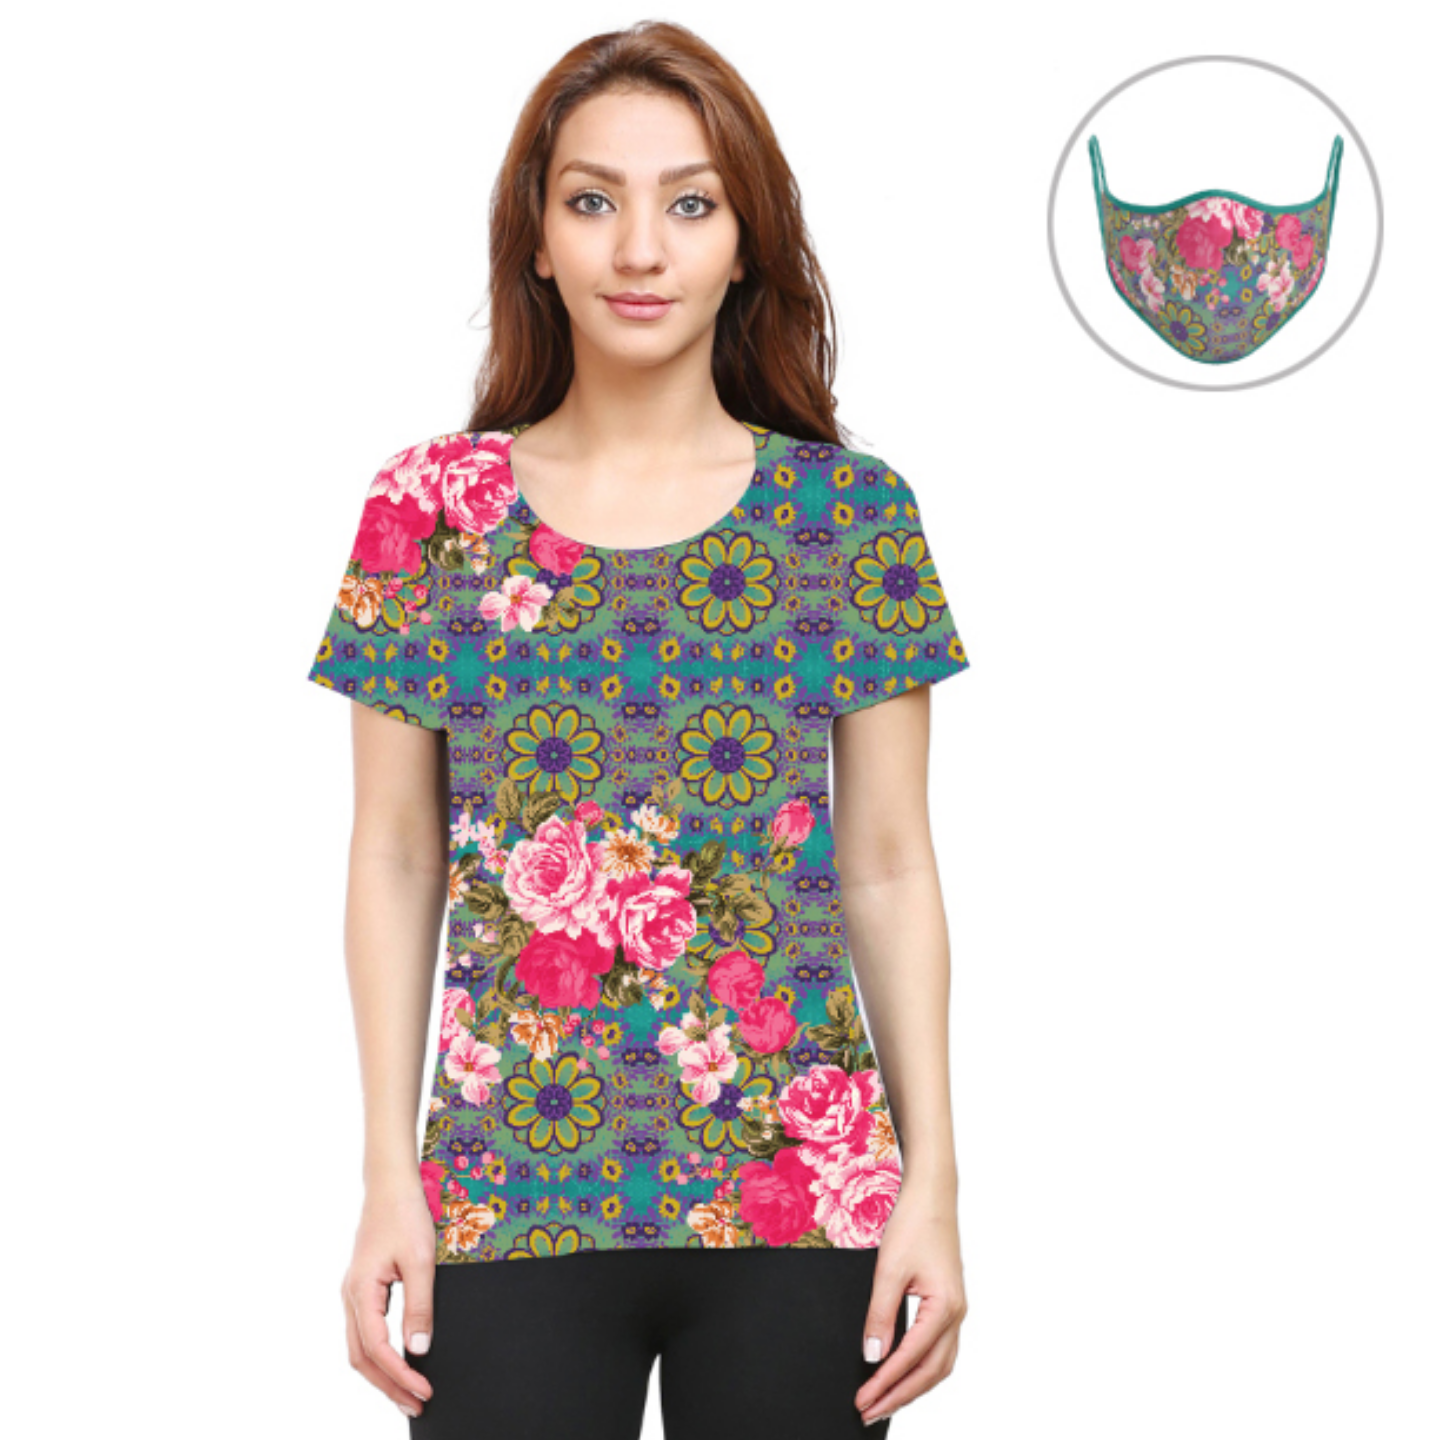 Women Cool Blue and Pink Flowery T-Shirt Mask Combo